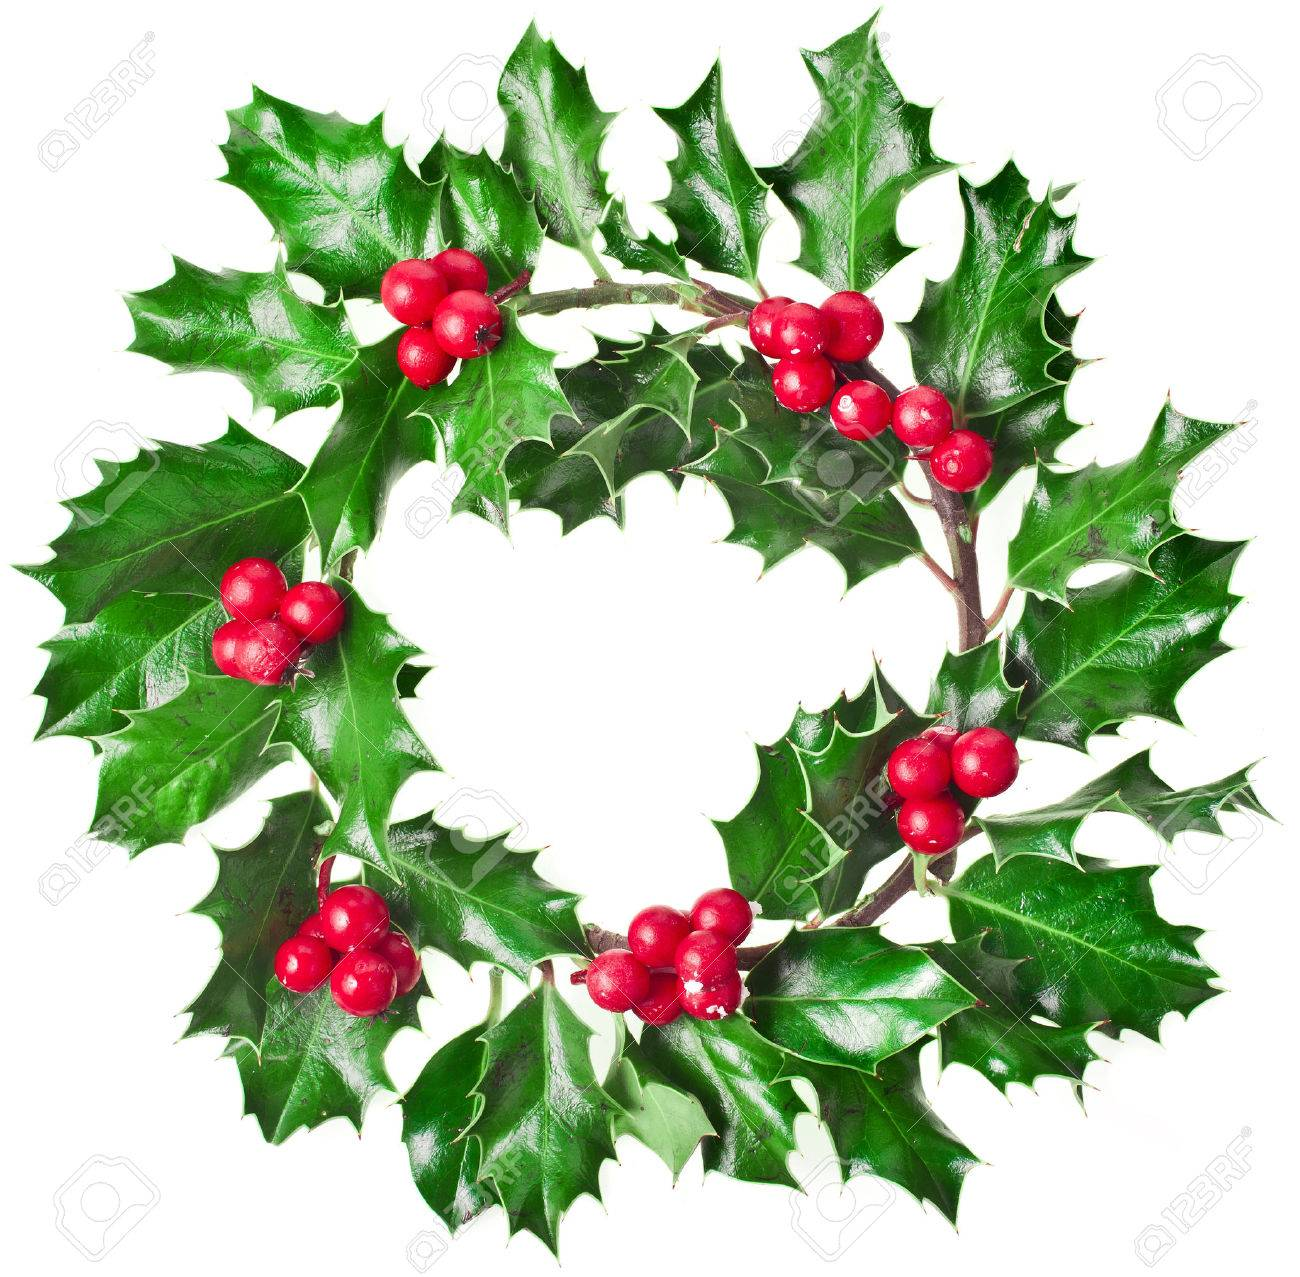 Christmas Holly Tree Part - 36: Christmas Decoration Wreath Of Fresh Berries And Leaves Holly Tree Isolated  On White Background Stock Photo